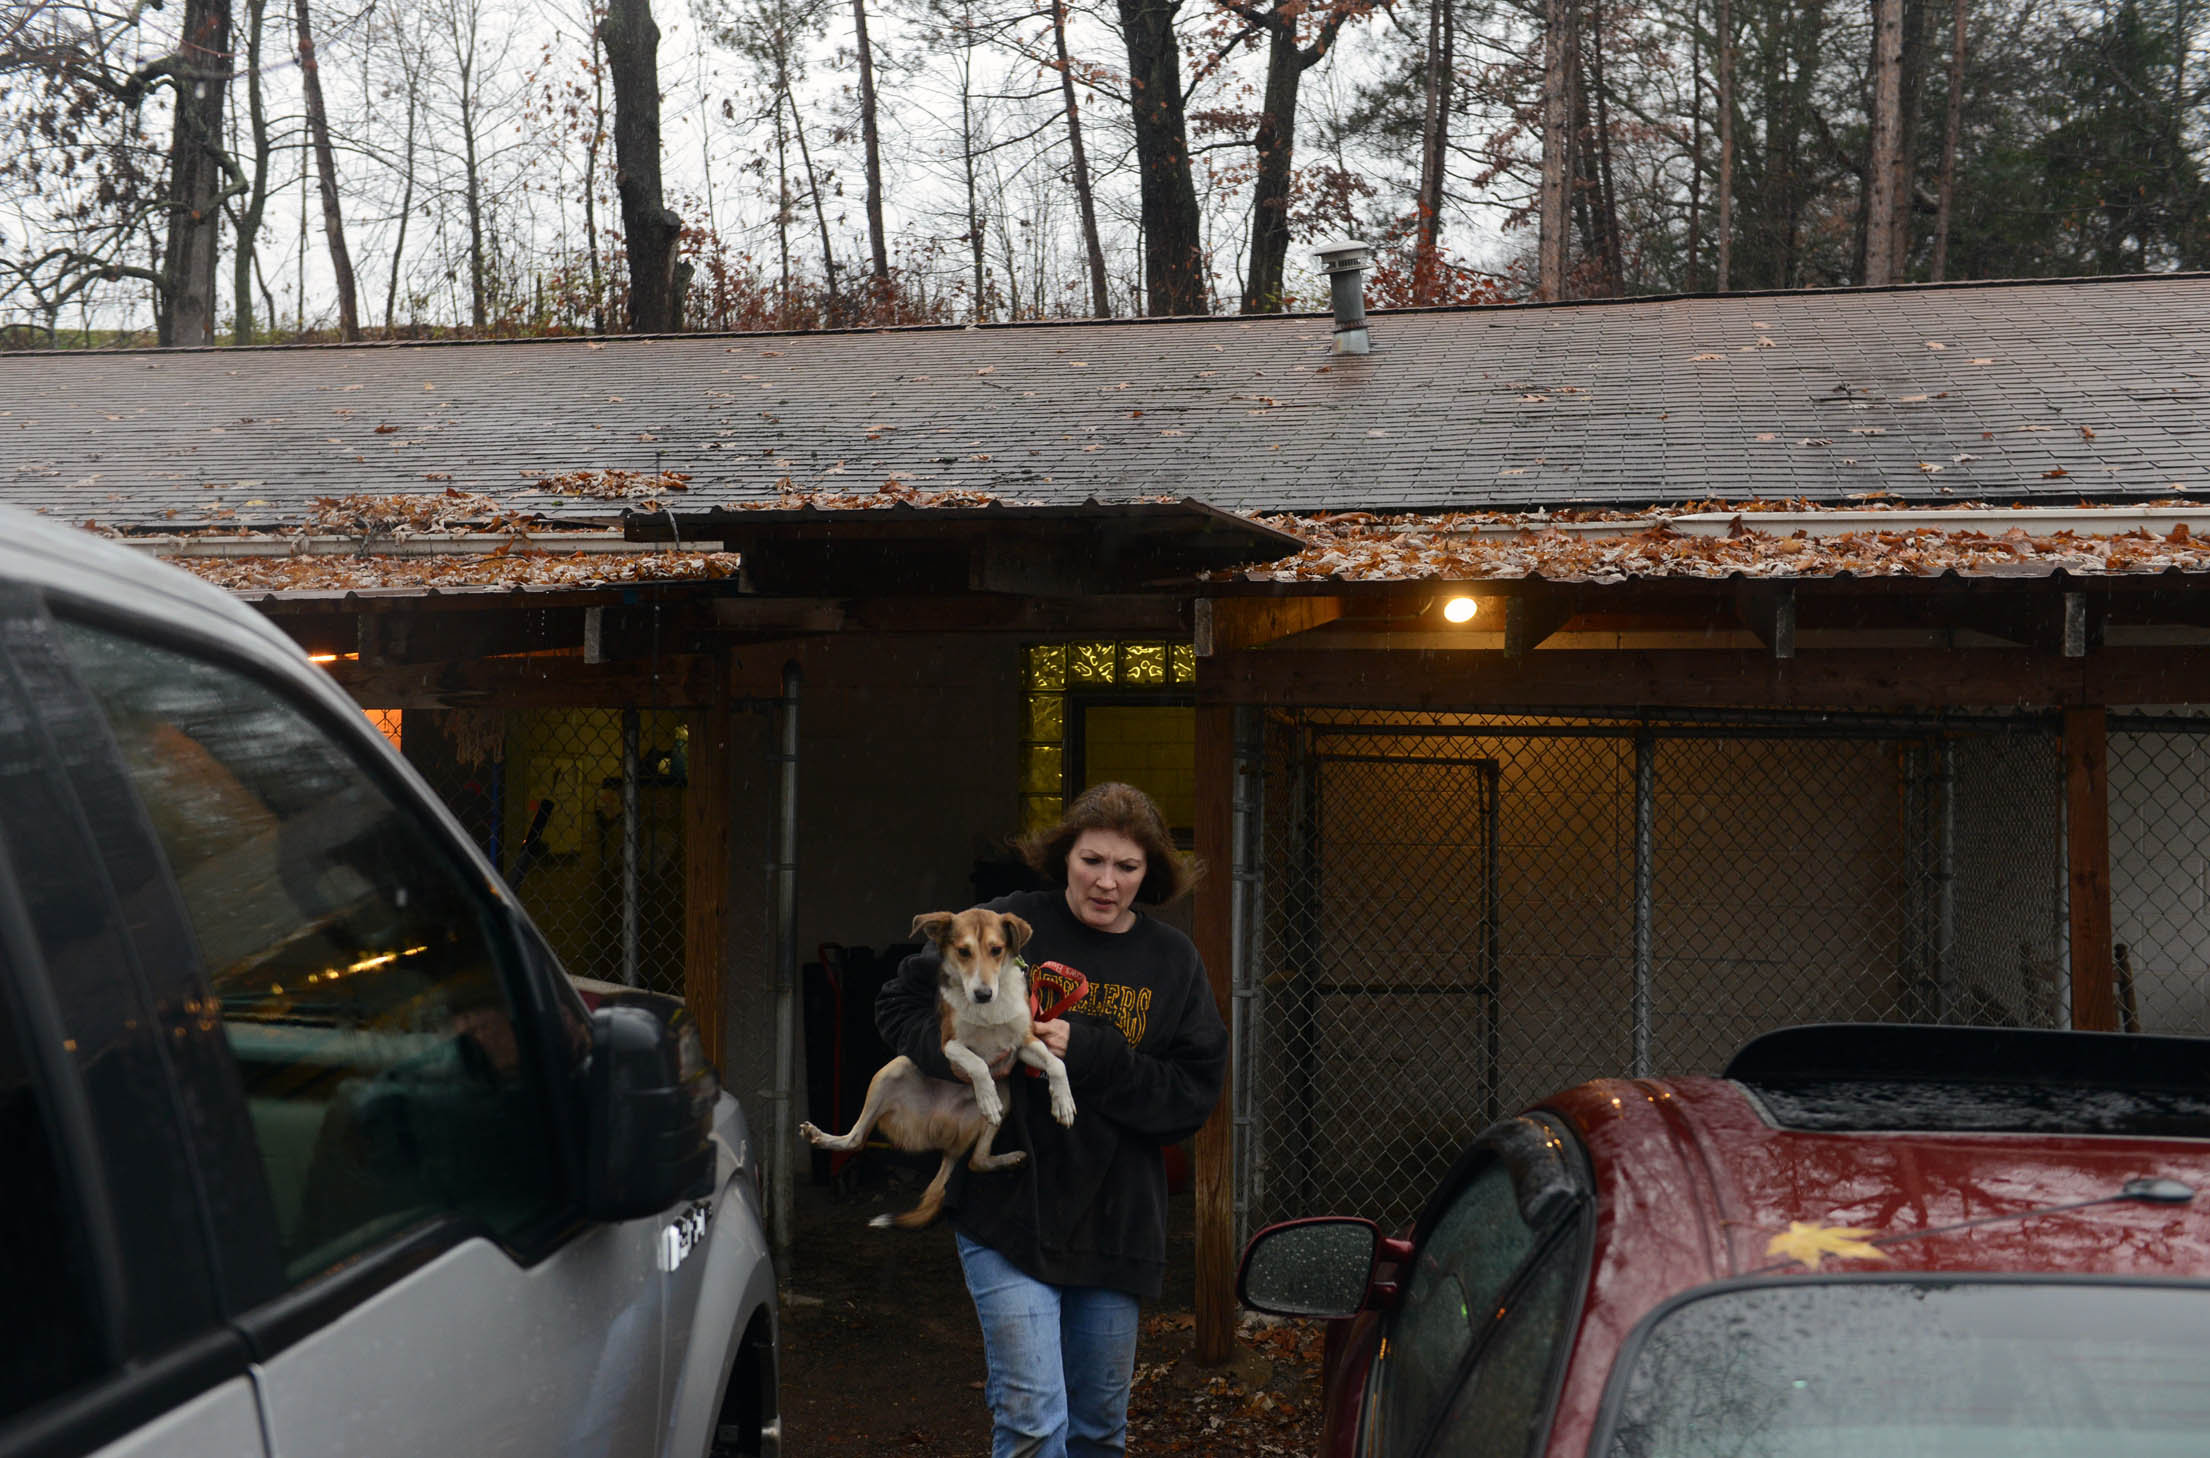 OrphansOfTheStorm1 Michael Henninger/Post-Gazette----local------- 10/29/12 Staffer Deb Pechan carries a dog named Timmy as volunteers and the staff of Orphans of the Storm, an animal shelter in Kittanning that sits close to the Allegeny River, work to evacuate animals in anticipation of possible flooding from Hurricane Sandy on Monday, Oct. 29, 2012.